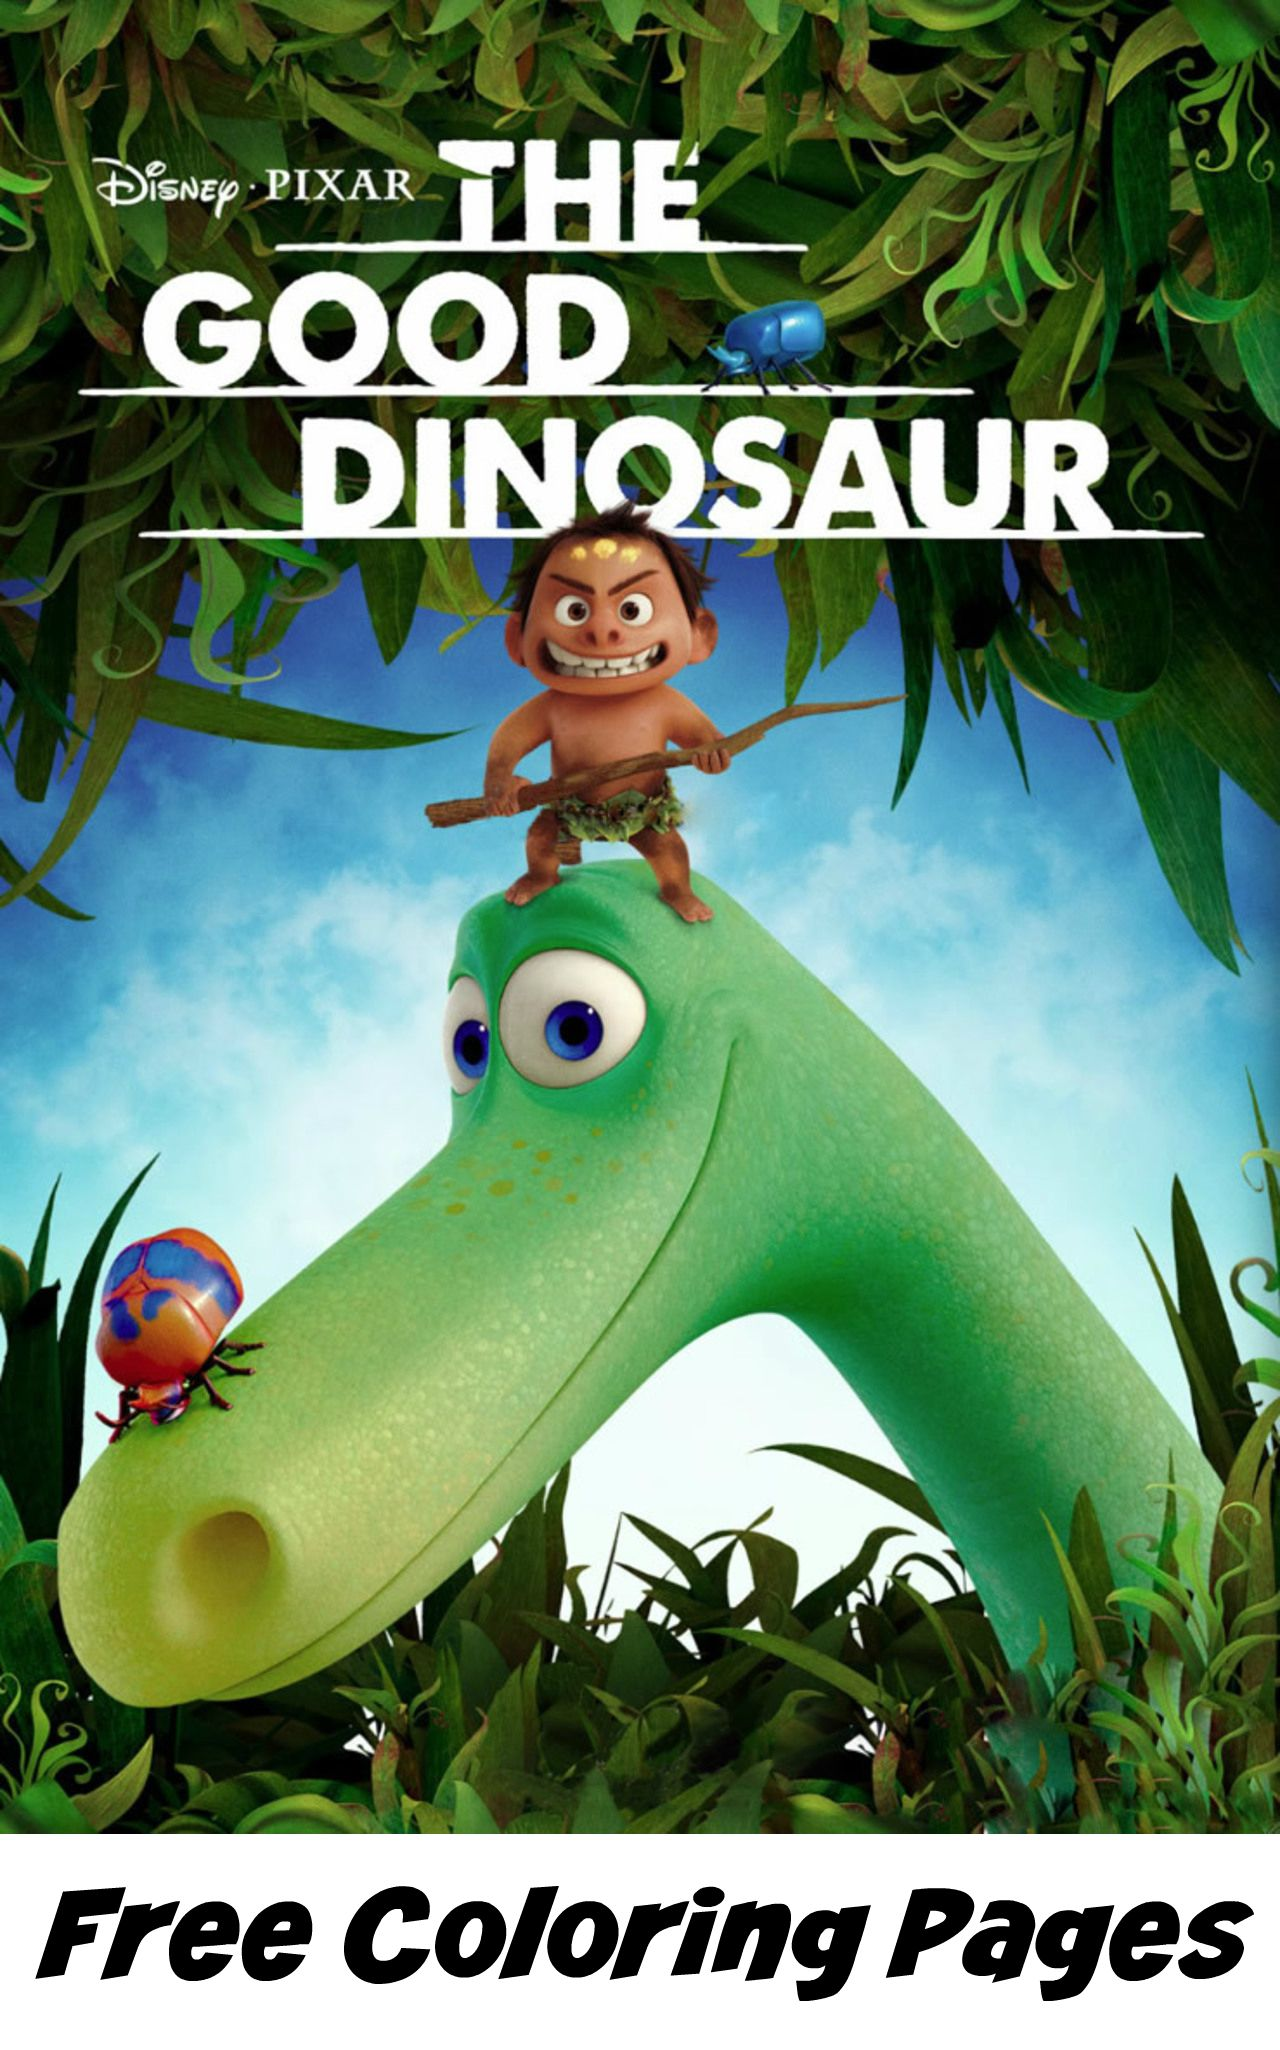 the good dinosaur free coloring pages